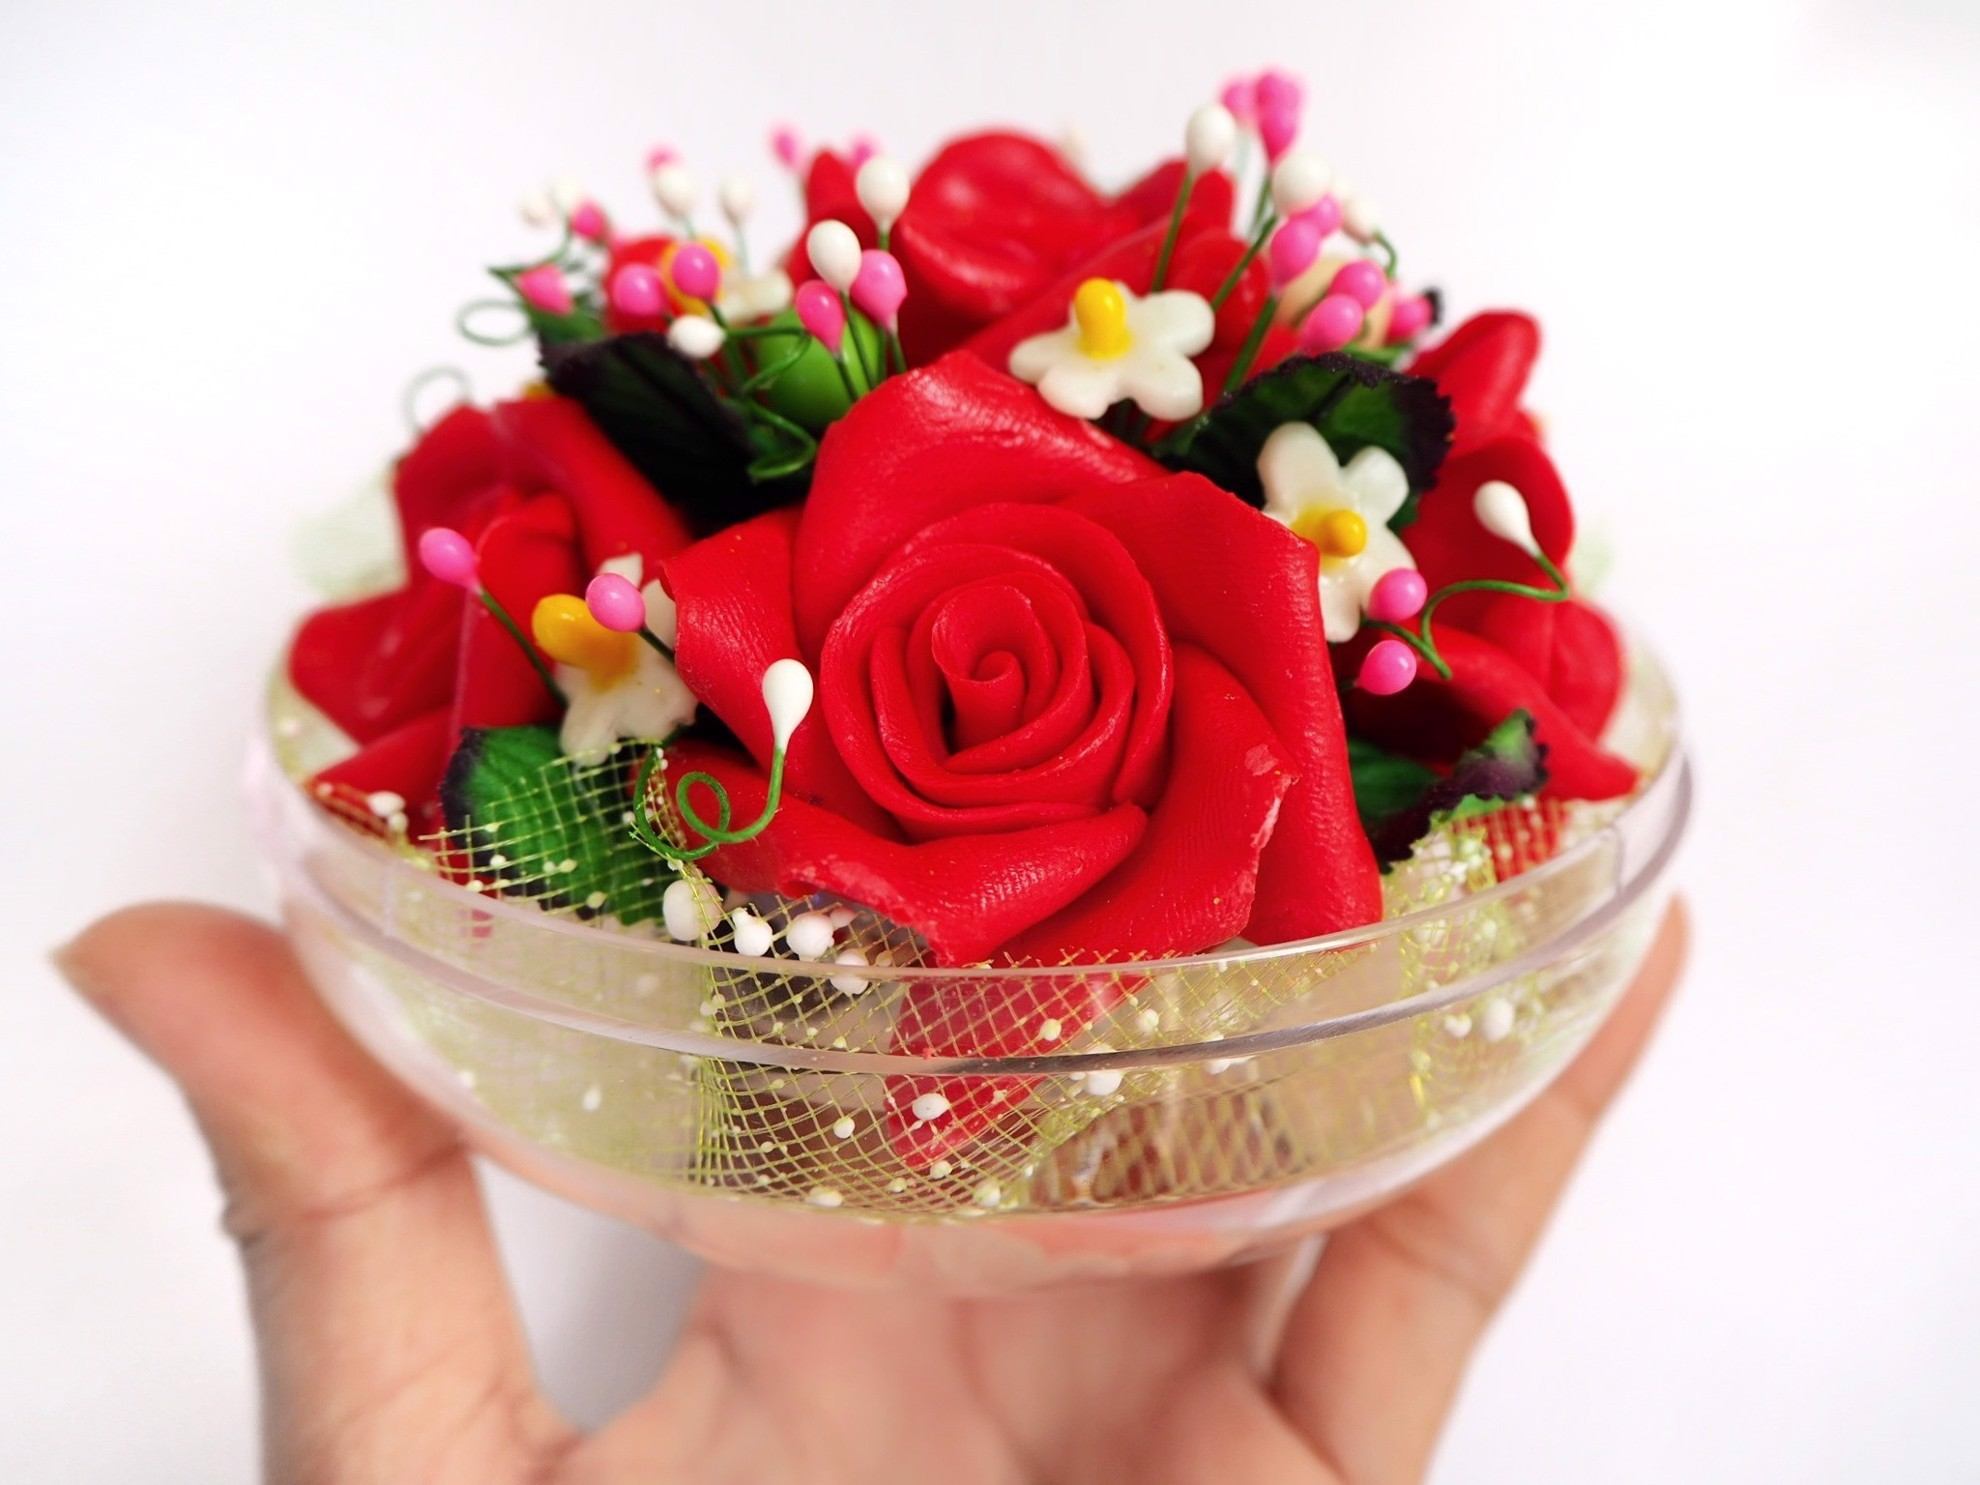 Picture of Red Rose Bouquet of Hand Carved Decorative Soaps with Rose Aroma Essential Oil Fragrance